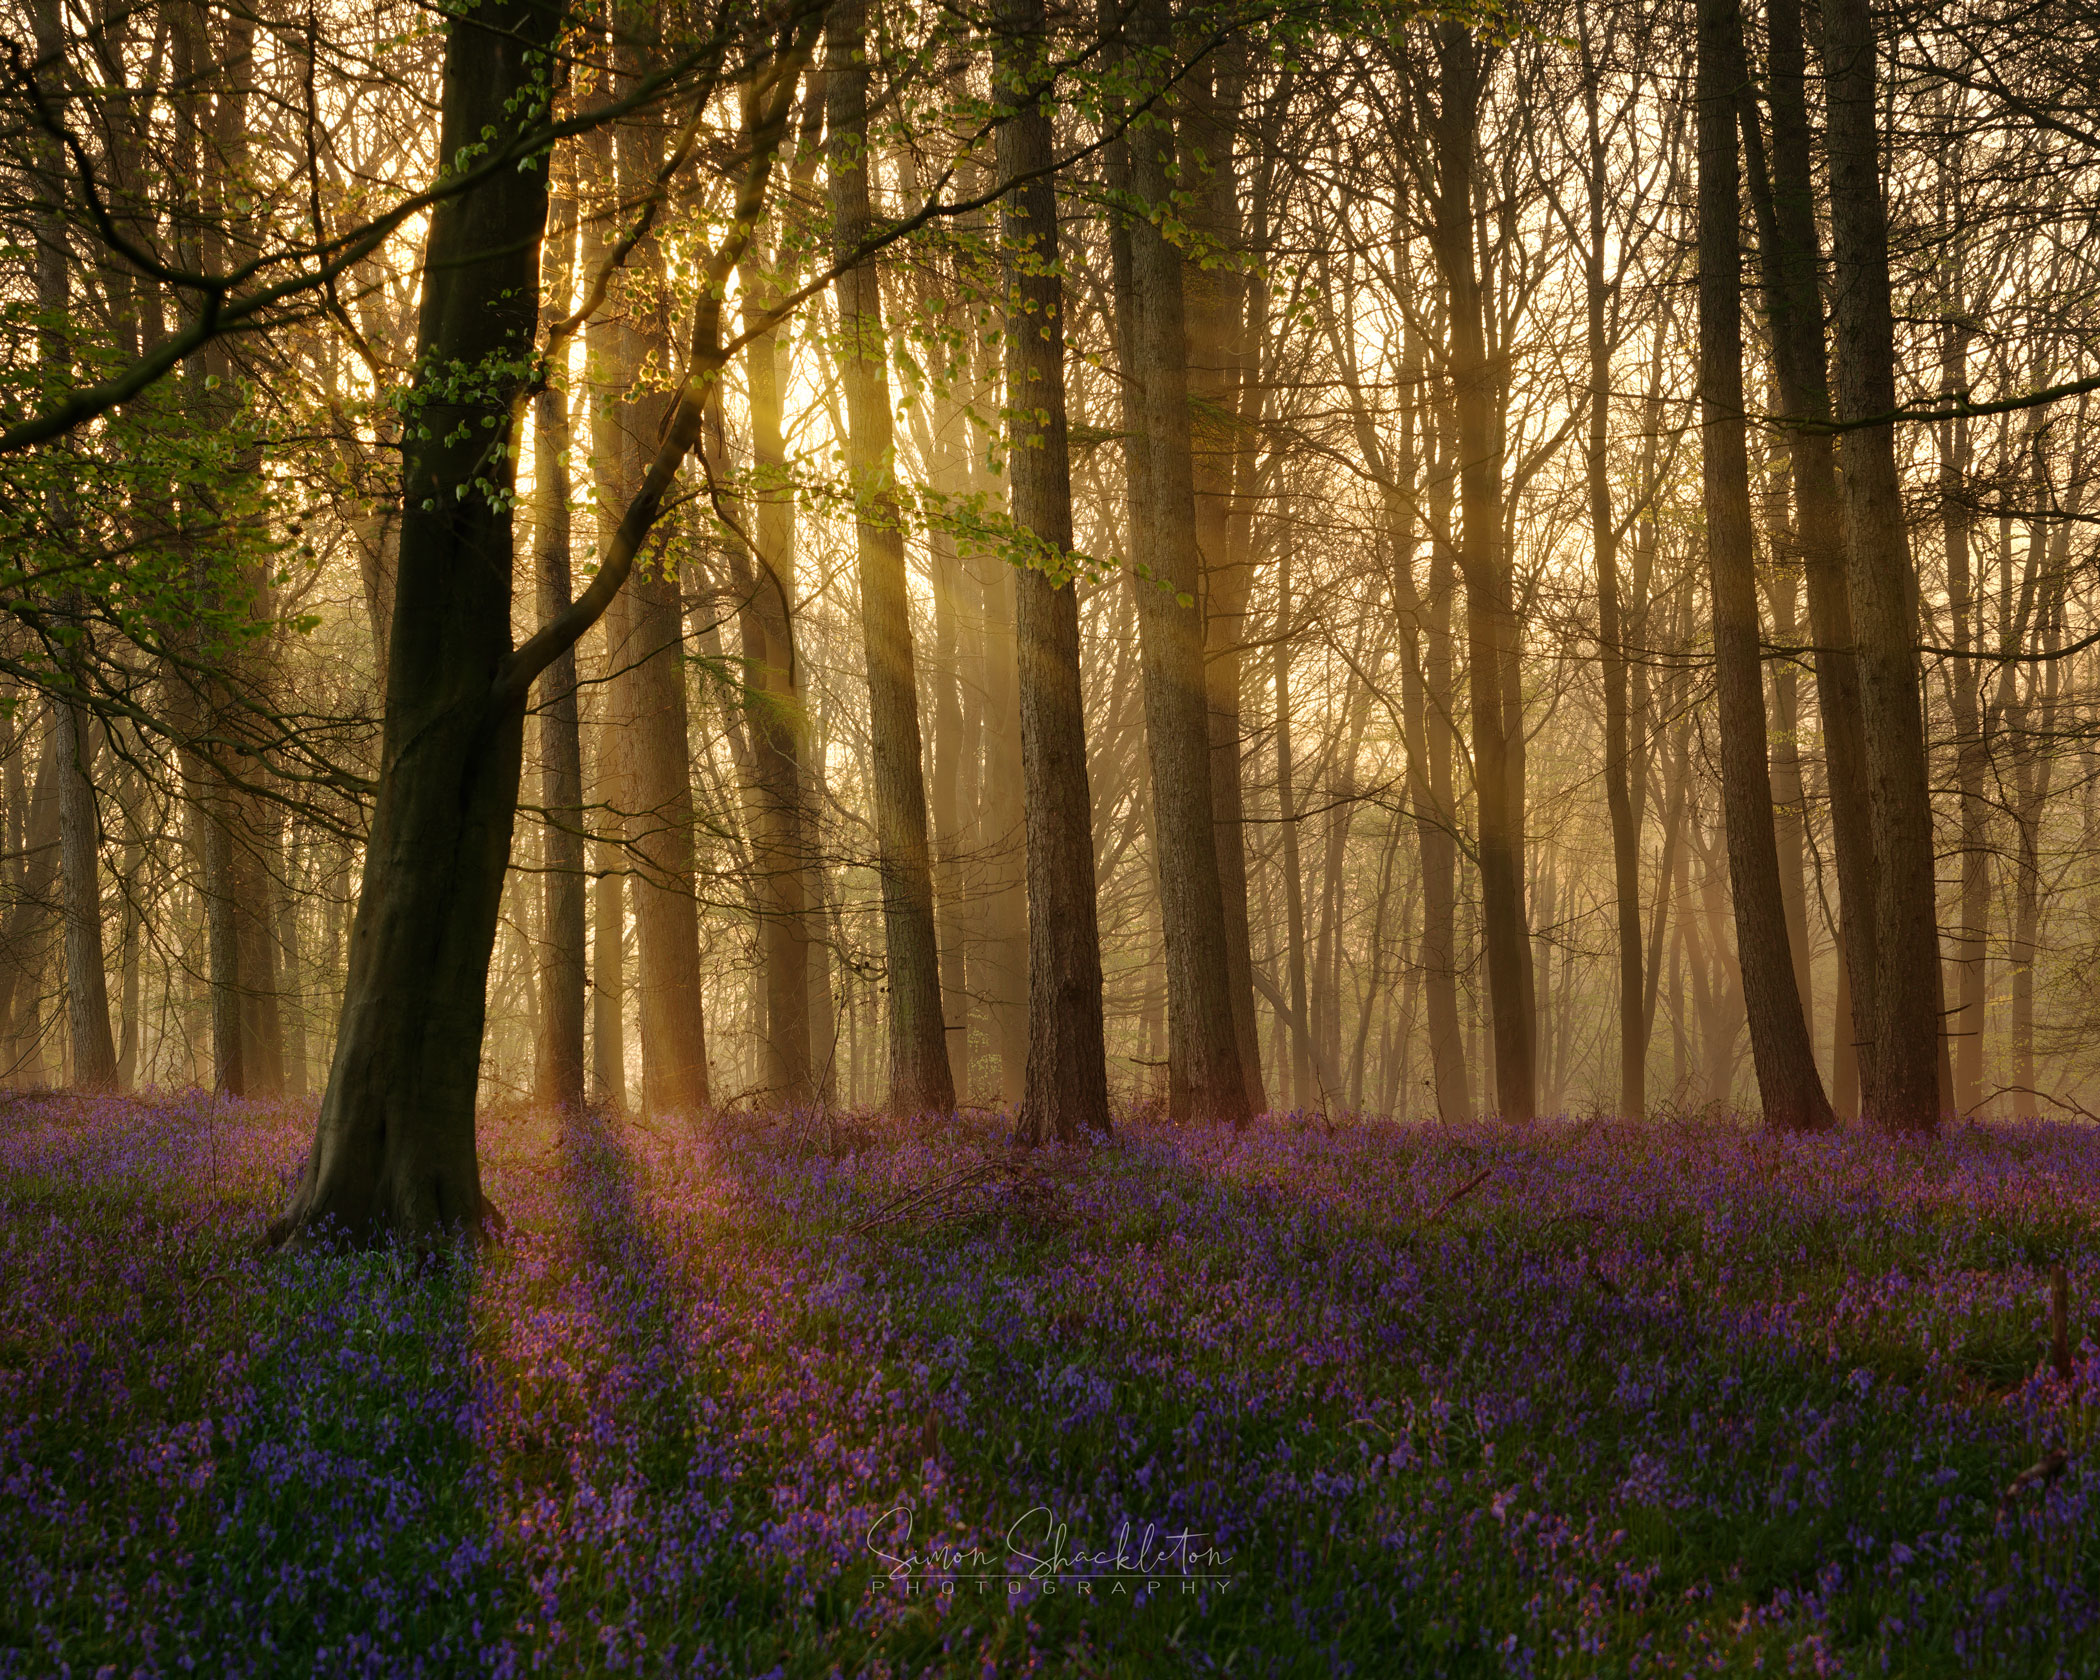 Misty Morning in the Bluebell Woods